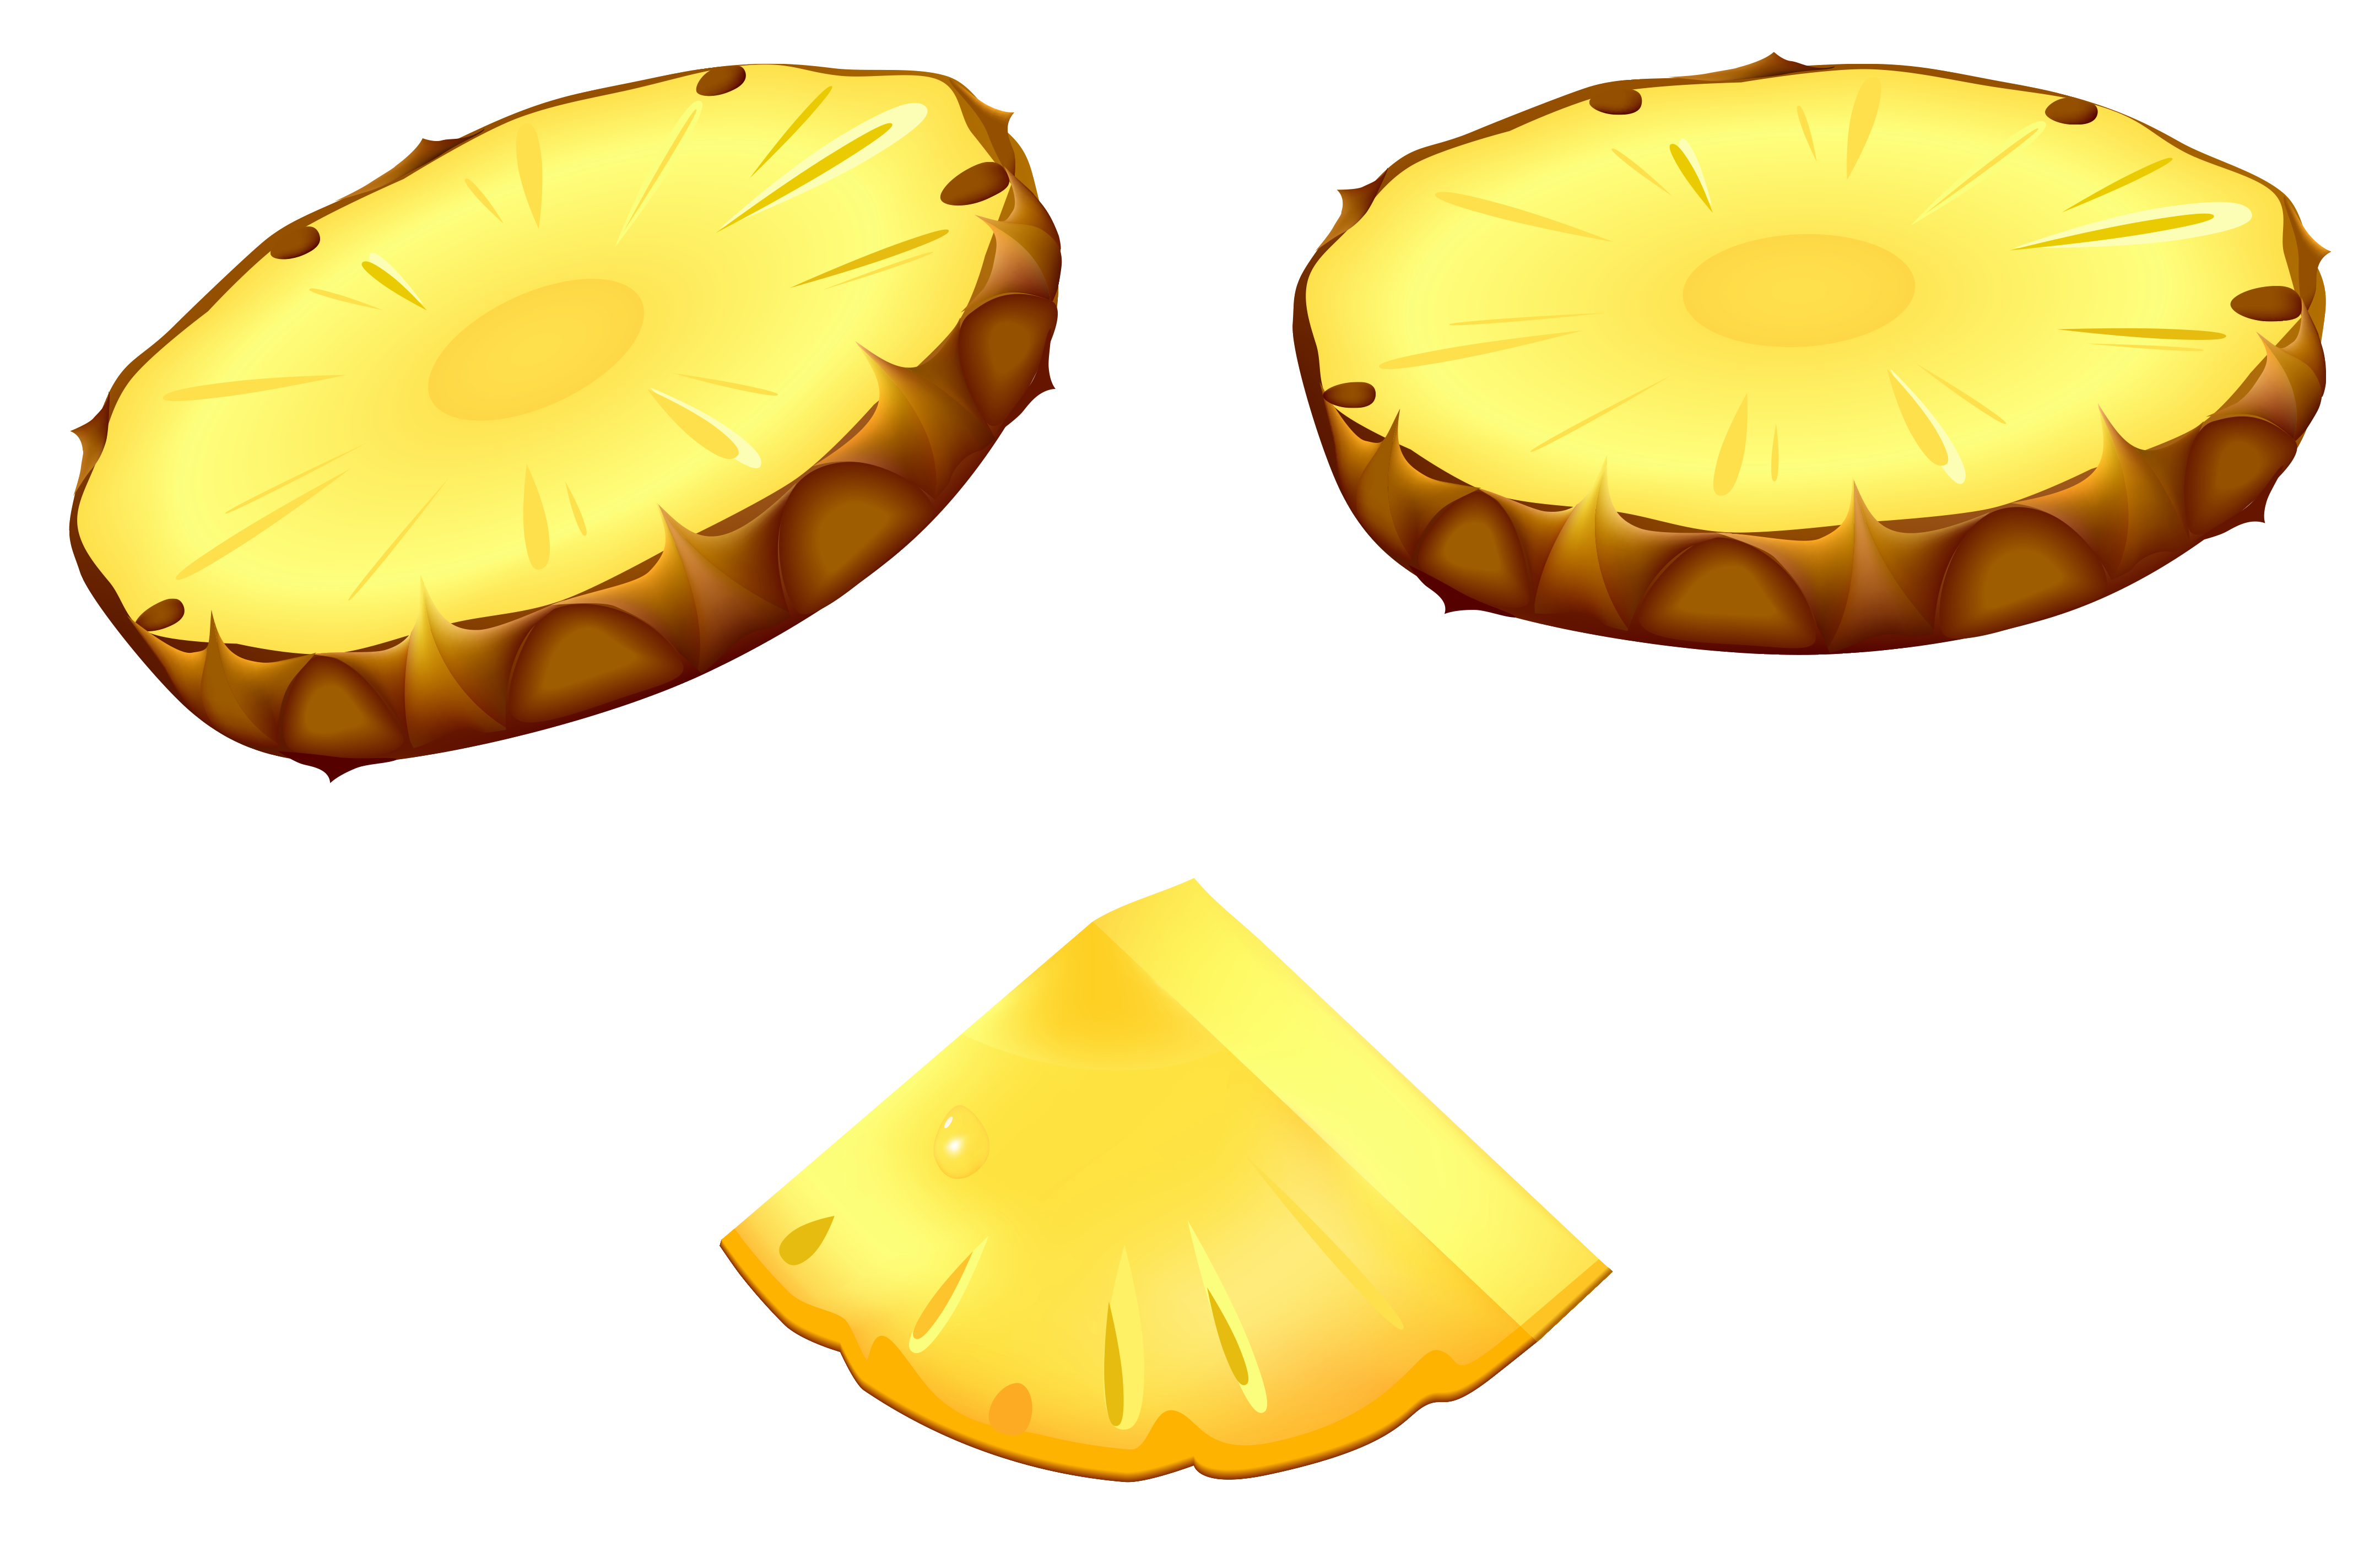 Pineapple Slices PNG Vector Clipart Image   Gallery Yopriceville ...